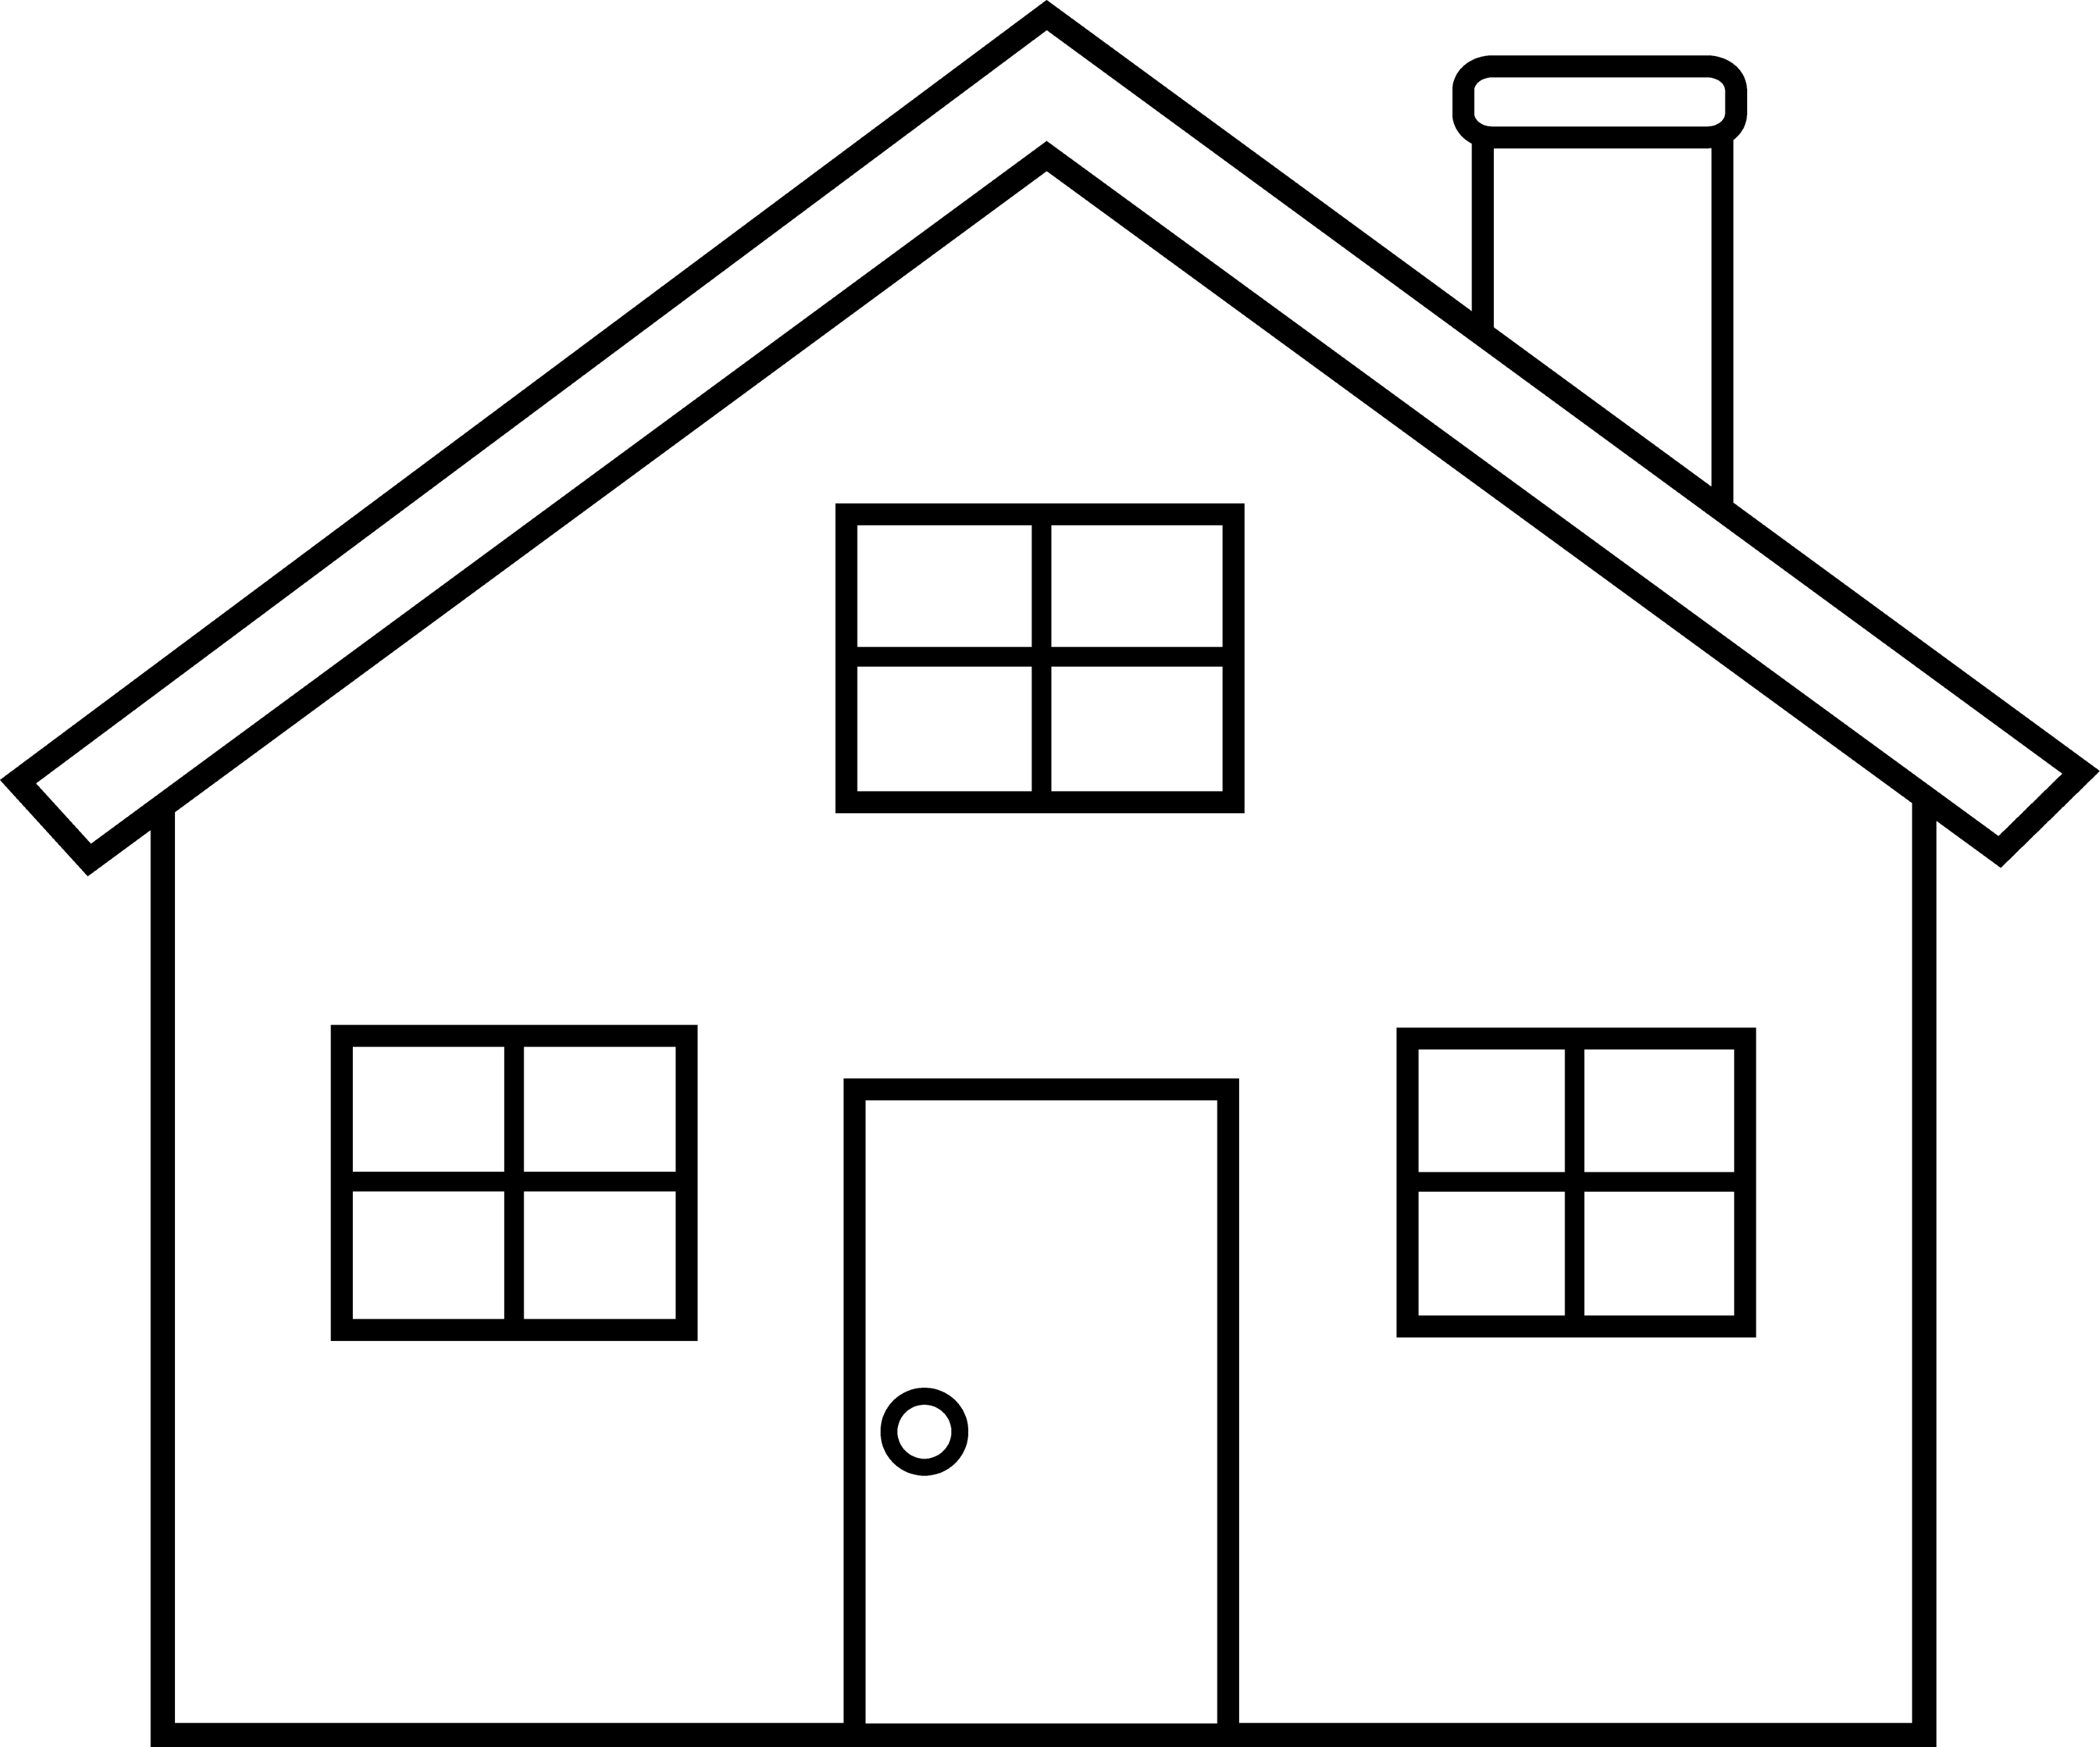 coloring outline of a house house coloring page twisty noodle of outline house a coloring